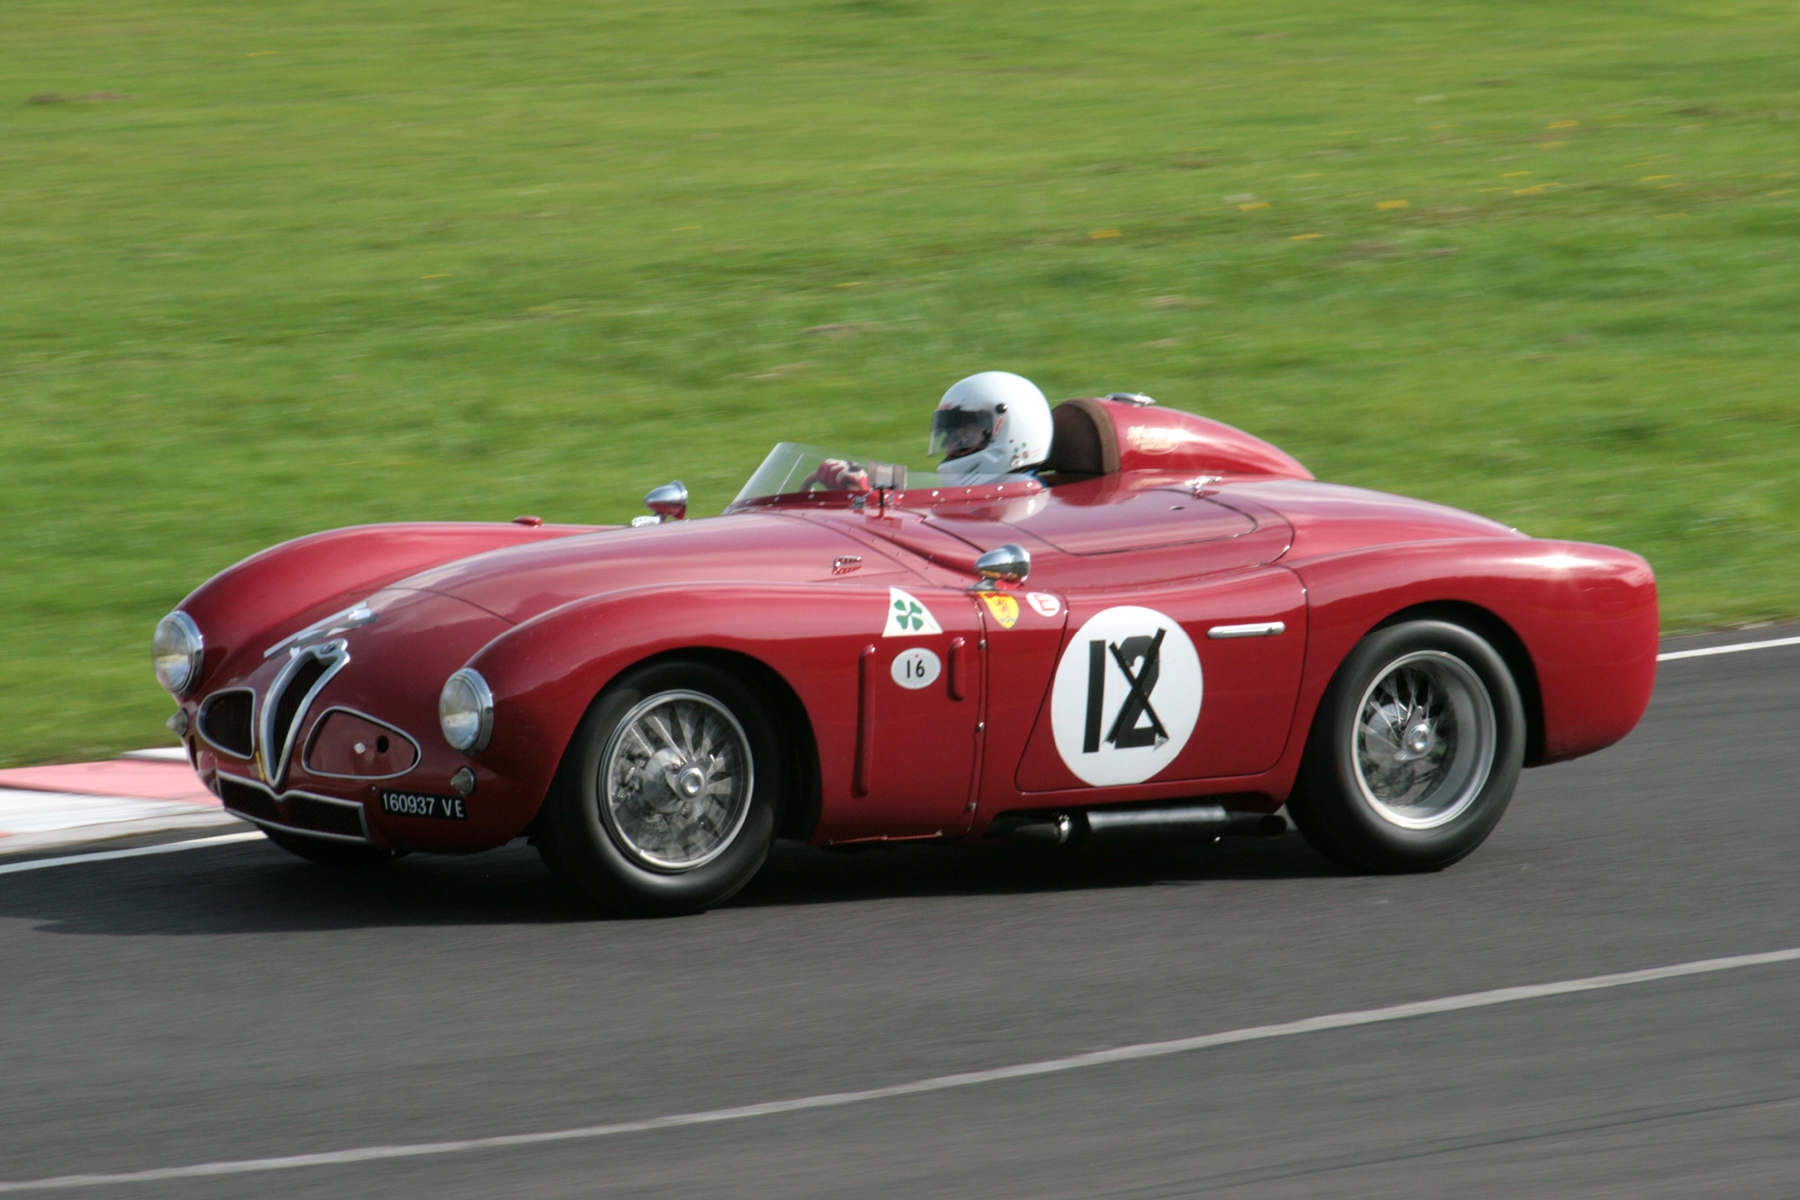 Chris Mann's Alfa Romeo Disco Volante finished 15th and vows that the car will be quicker next year with adjustment to anti rollbar and/or suspension and new tyres and brakes. I can't wait!       - Photo - John Turner